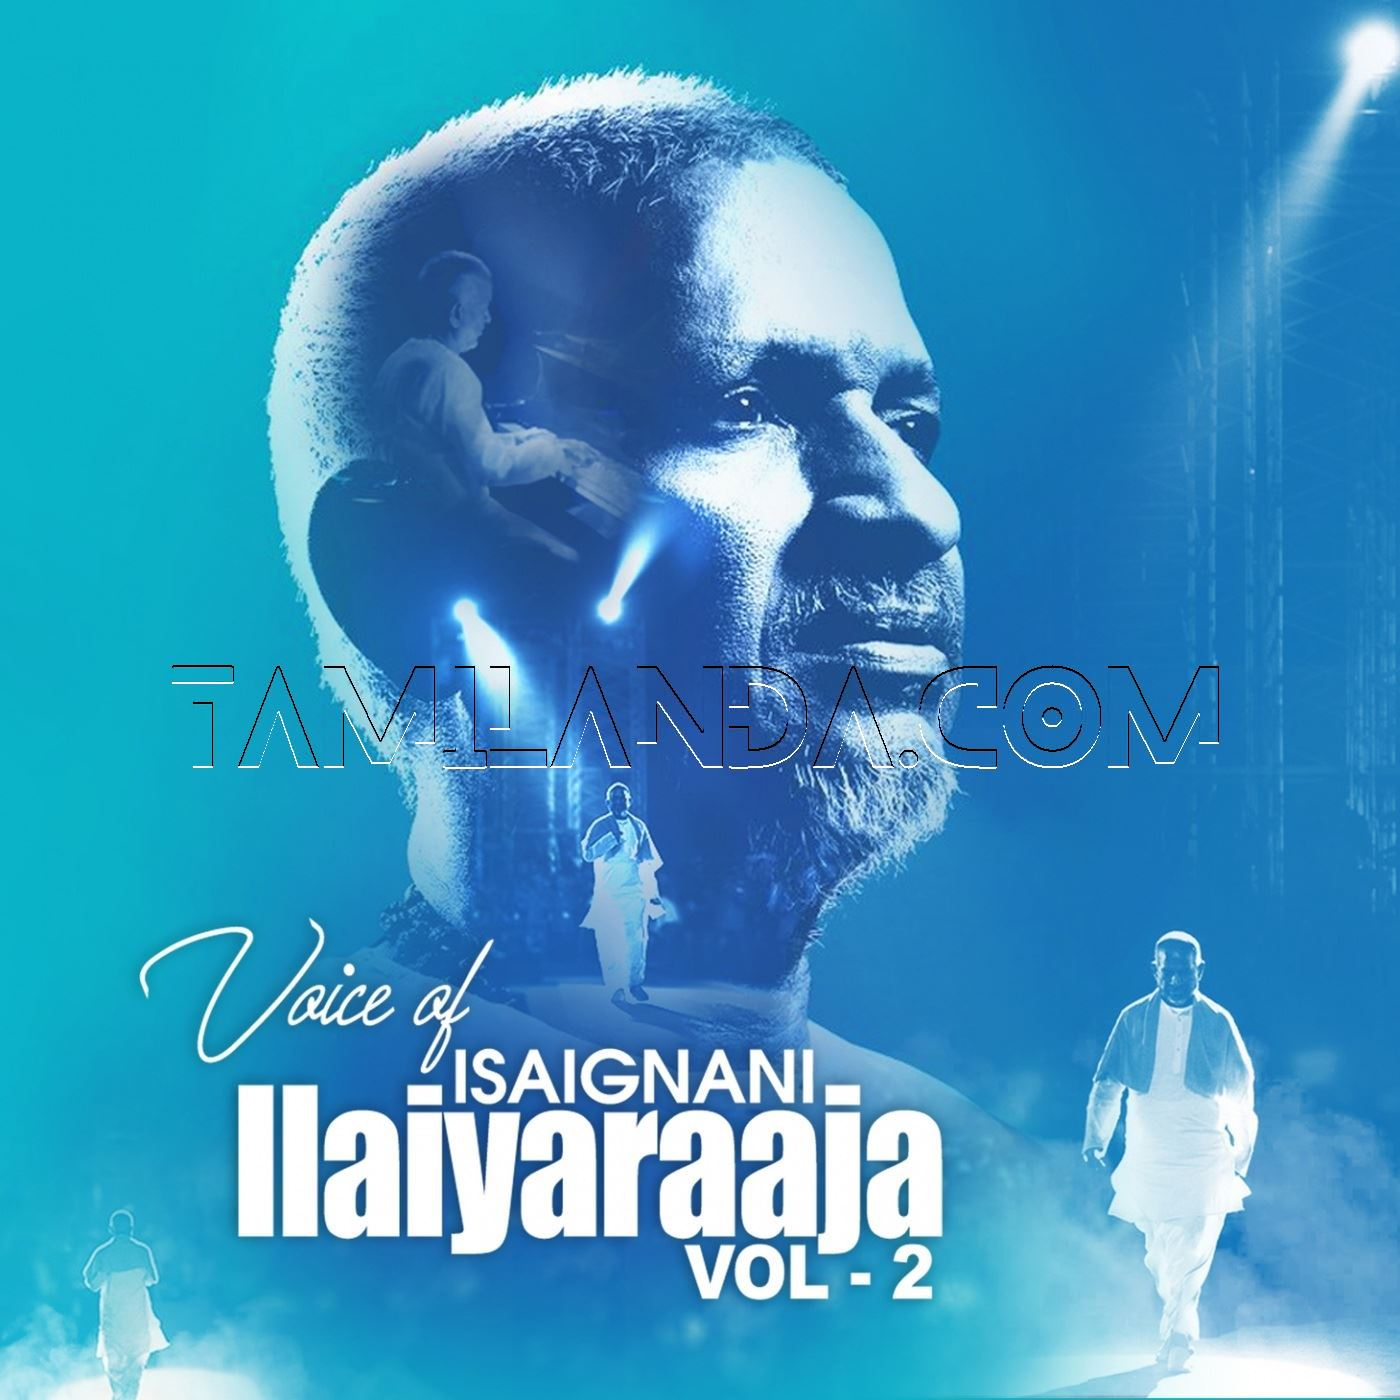 Voice Of Isaignani Ilaiyaraaja, Vol. 2 FLAC Songs